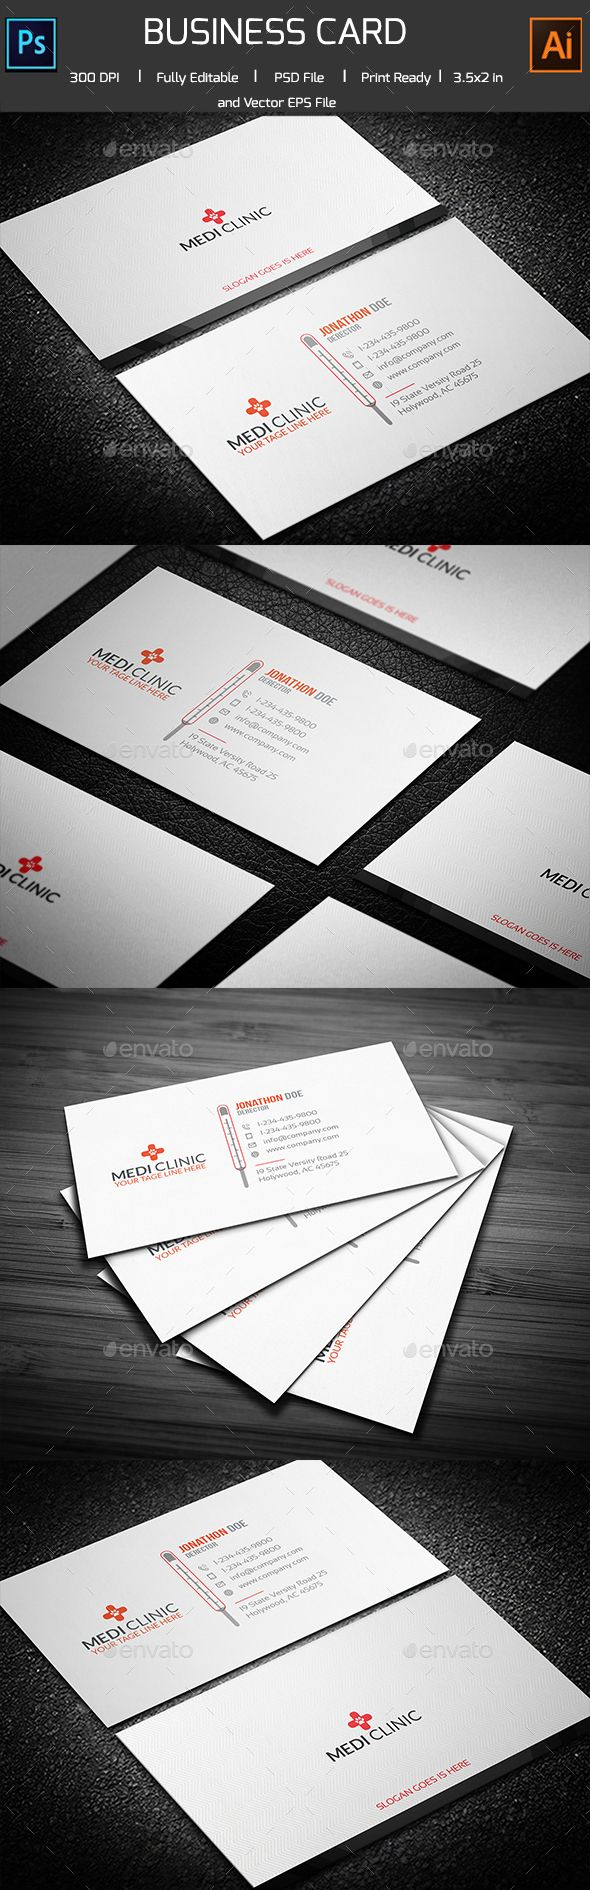 Medical/Thermal Business card | Business cards, Card templates and ...